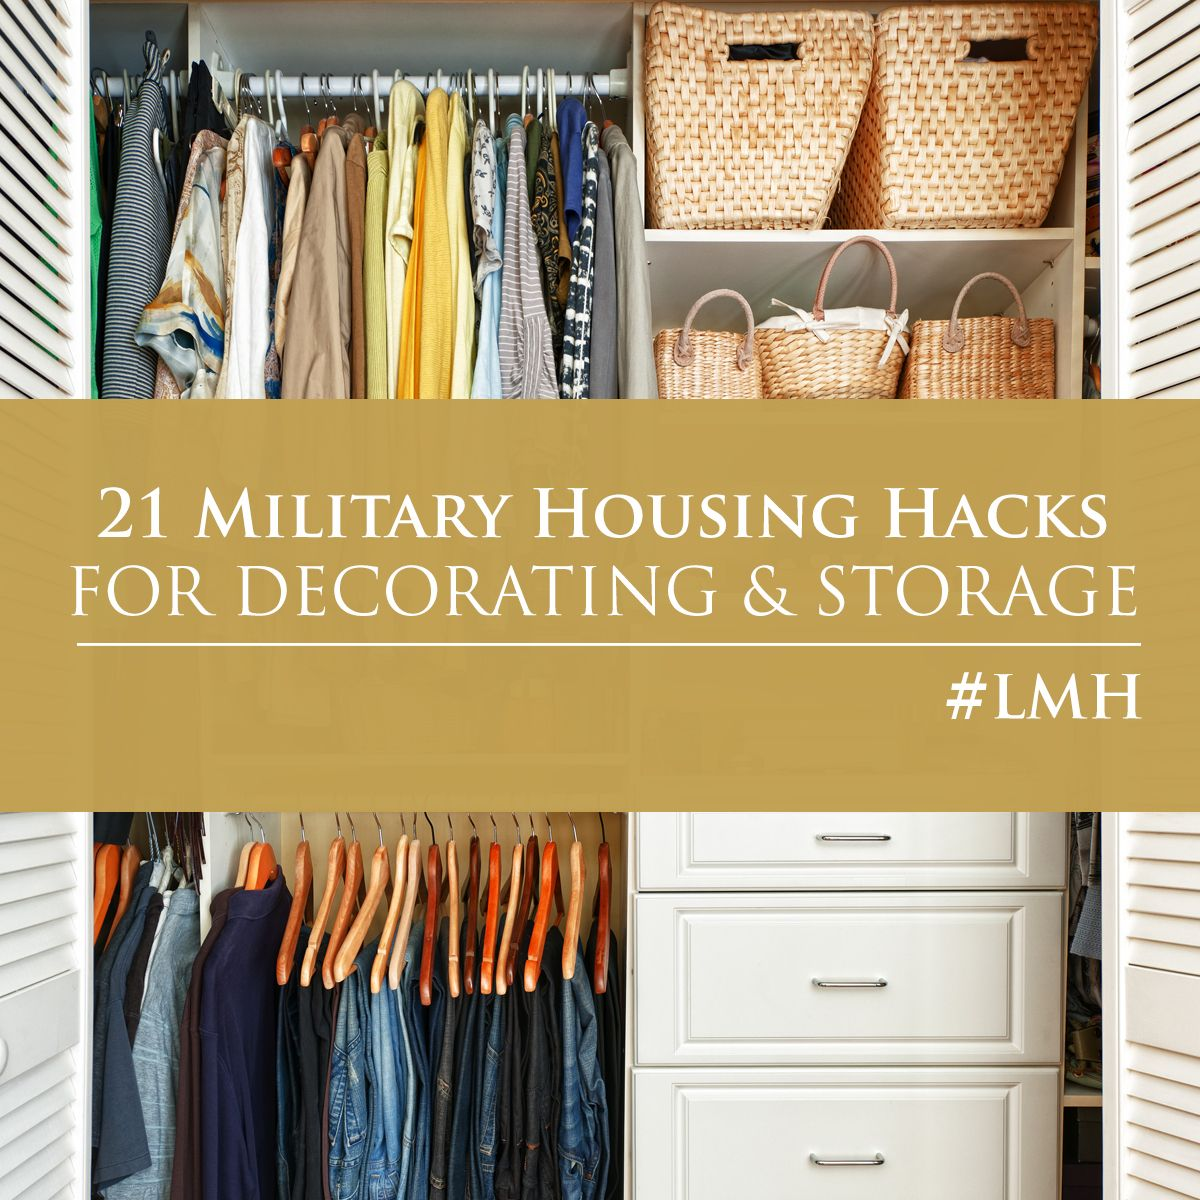 21 Most Unique Wood Home Decor Ideas: 21 Military Housing Hacks: Tips For Decorating And Storage